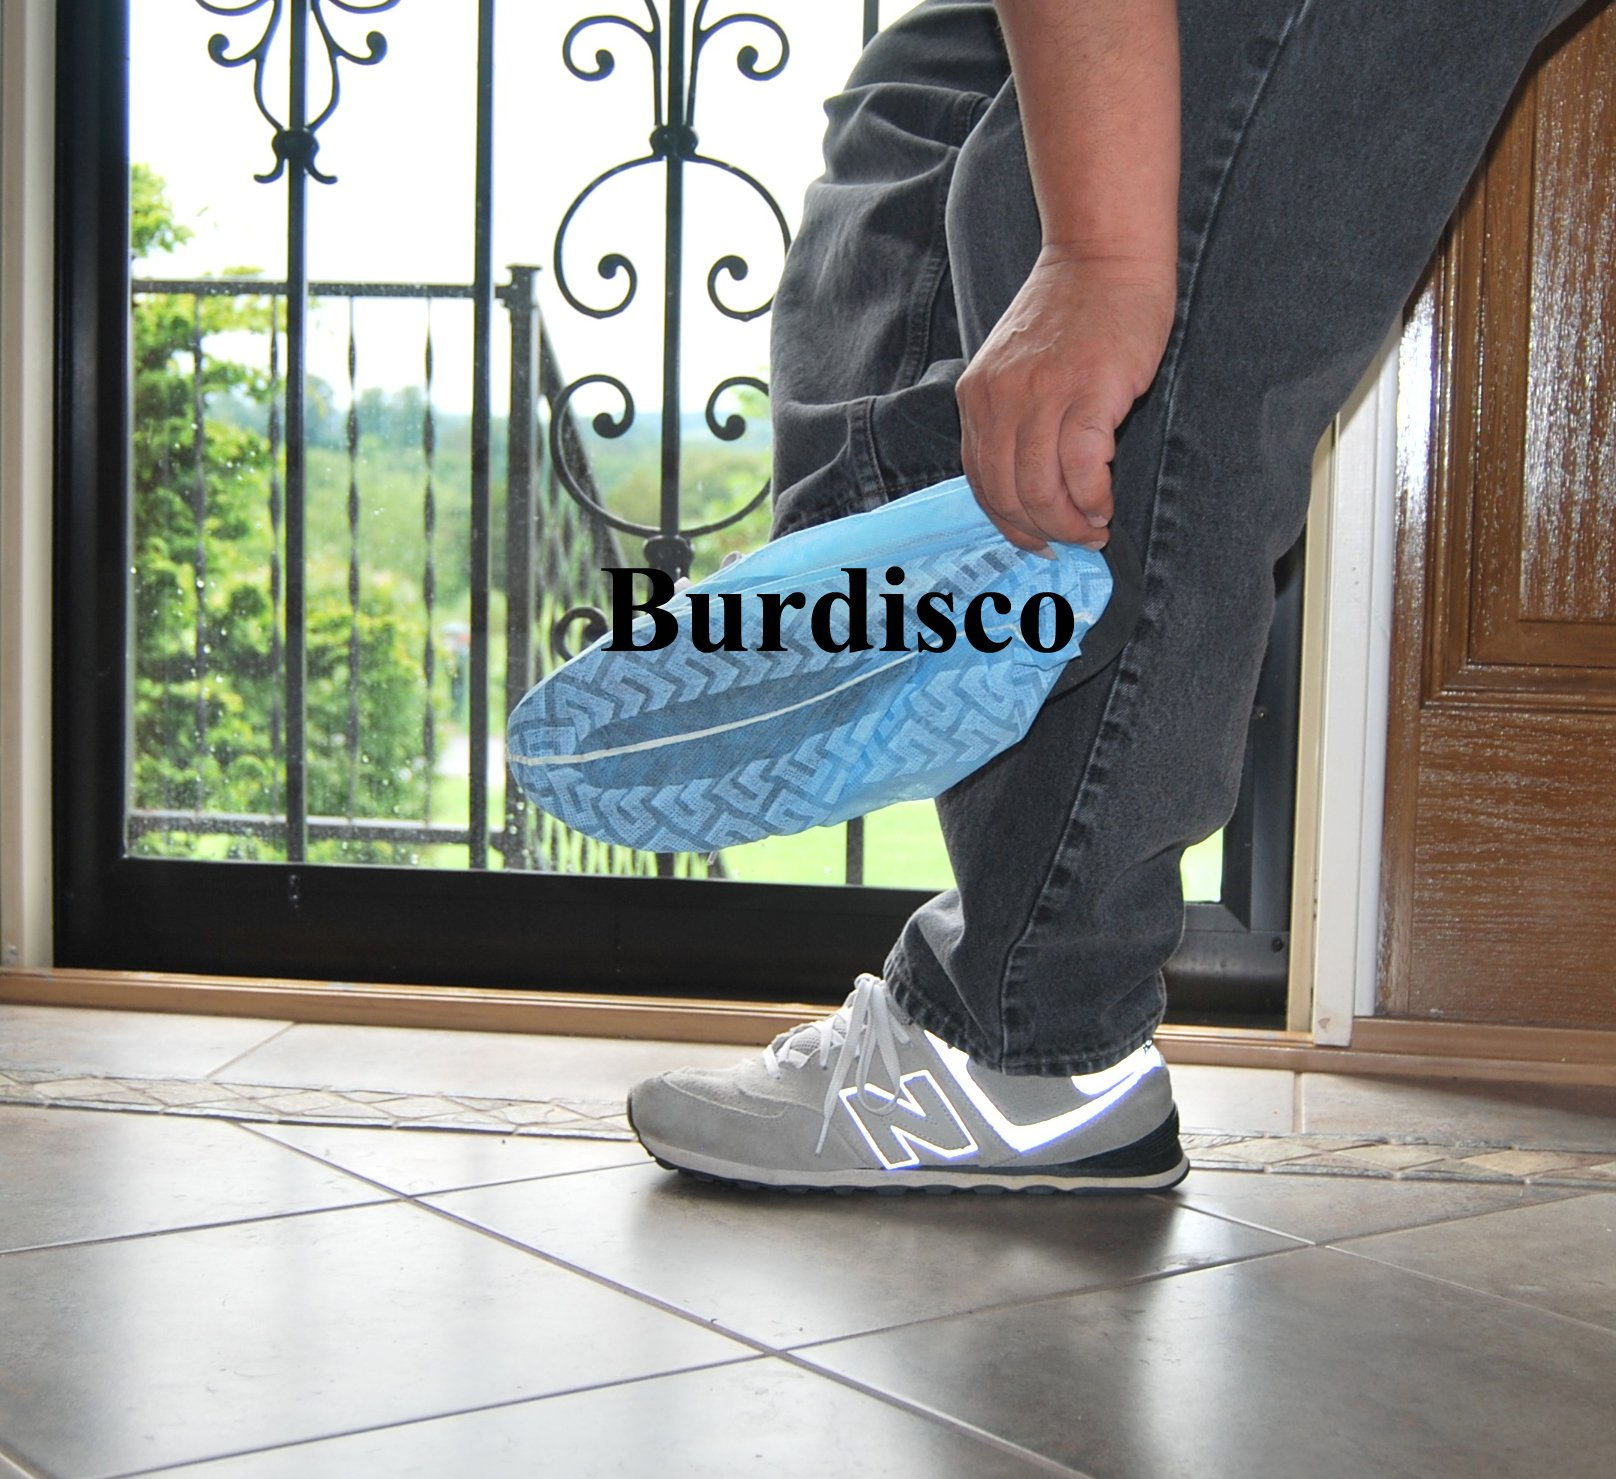 Disposable Shoe Covers Large LGE Non Skid Wholesale 1000 Pack